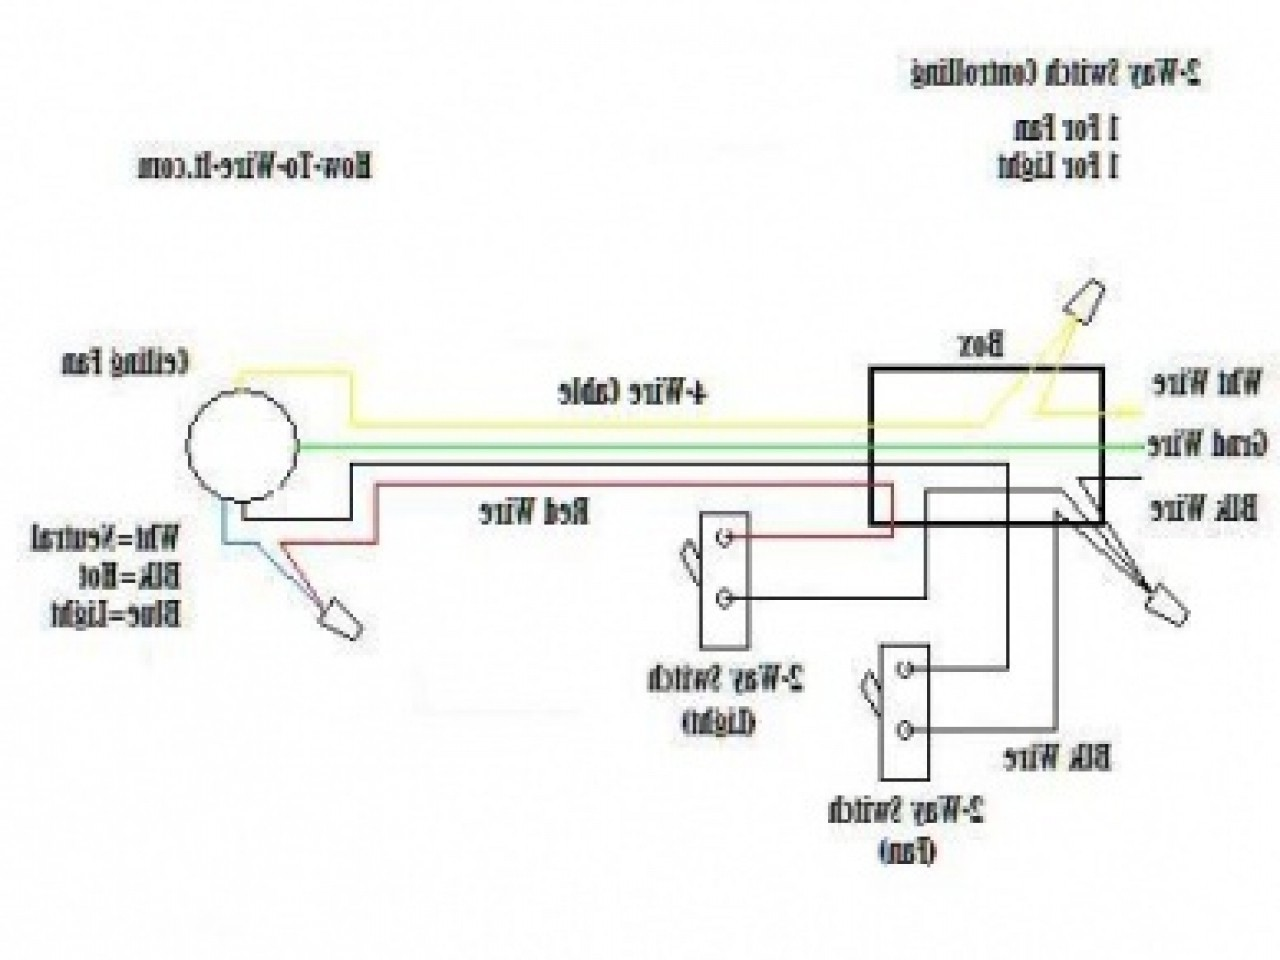 5 Wire Ceiling Fan Capacitor Wiring Diagram | Wiring Diagram ... Hampton Bay Cbb Fan Capacitor Wire Diagram on hampton bay ceiling fan wiring color code, hampton bay 52 ceiling fan, hampton bay remote wiring reversing module, hampton bay fan wire colors, hampton bay wiring diagram, hampton bay fan switch diagram,